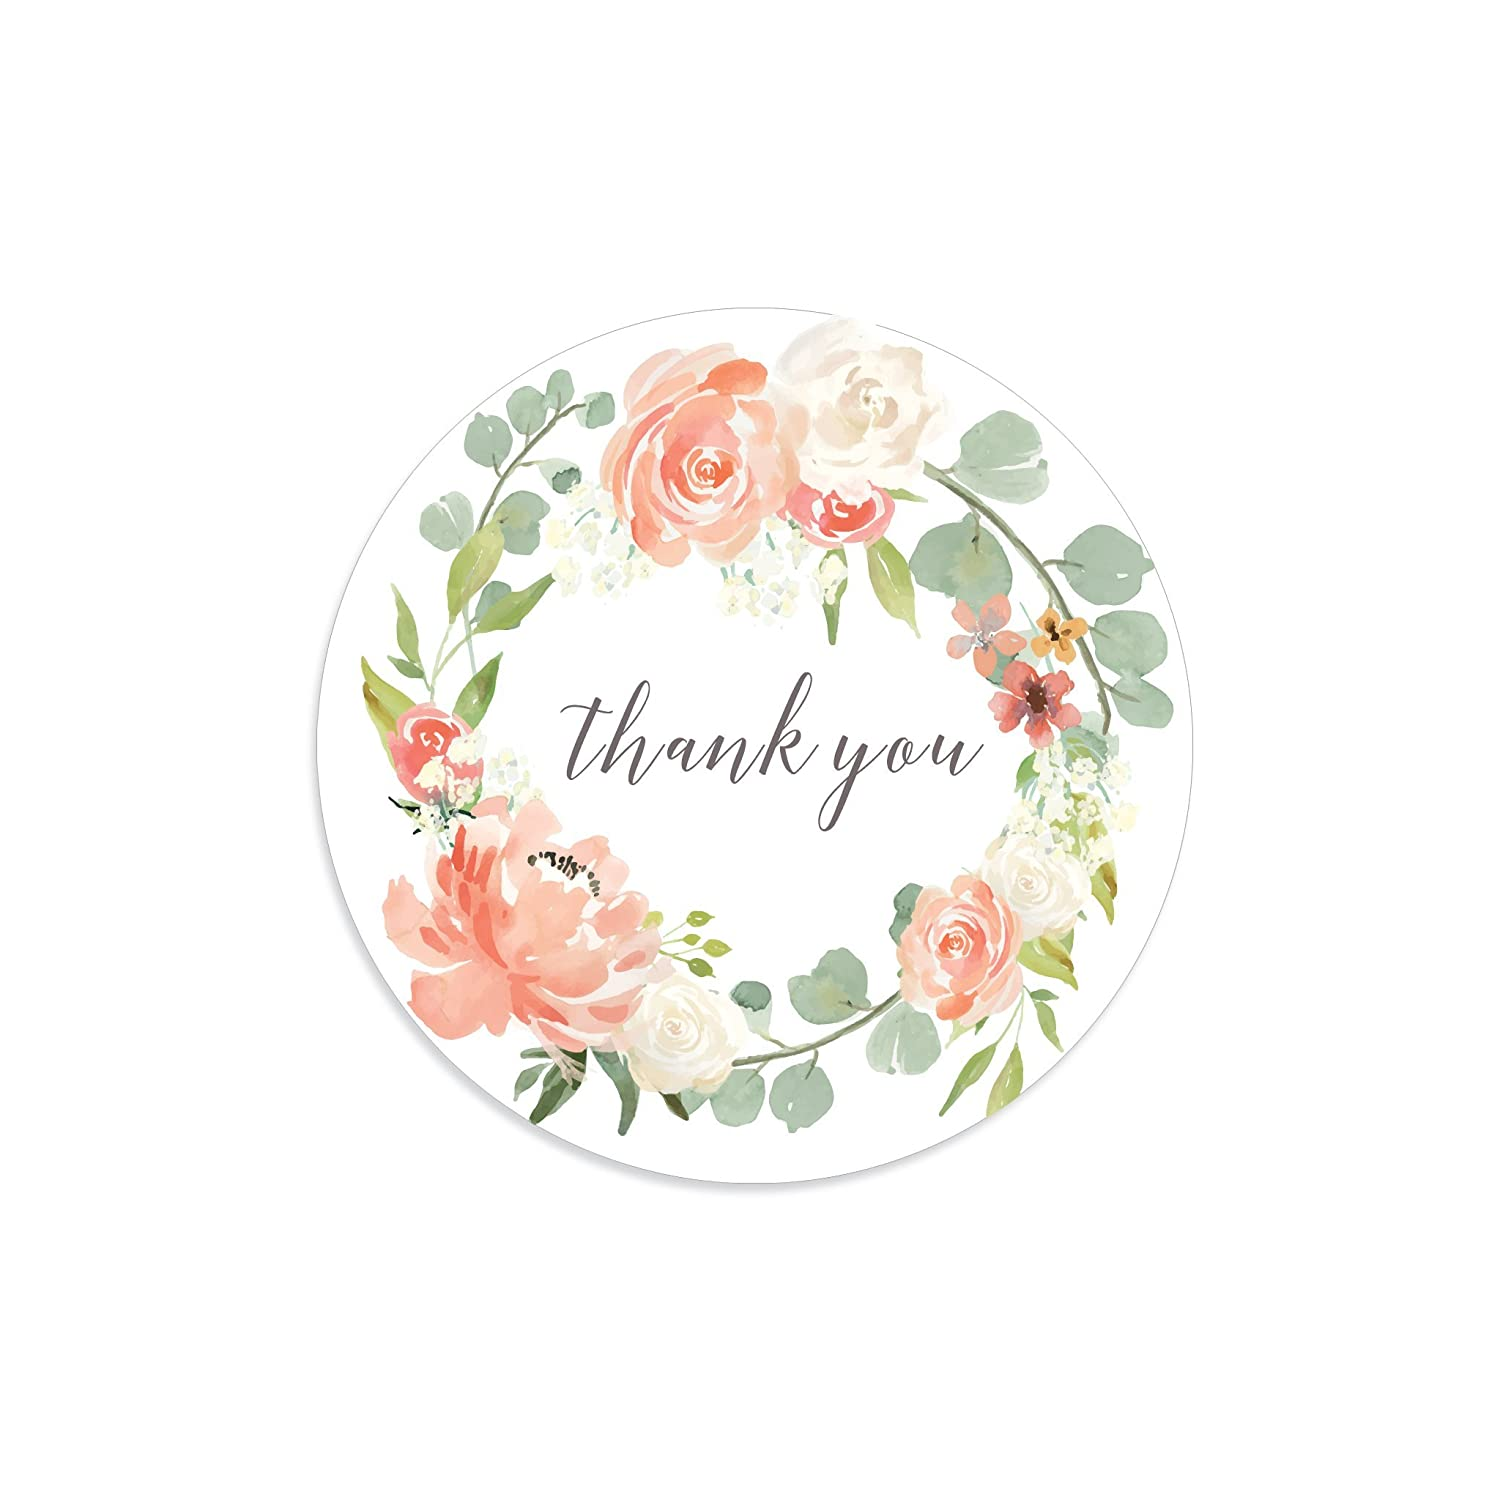 Amazon com thank you stickers rose stickers floral wreath floral thank you stickers floral thank you tags flower thank you tags rose wreath handmade